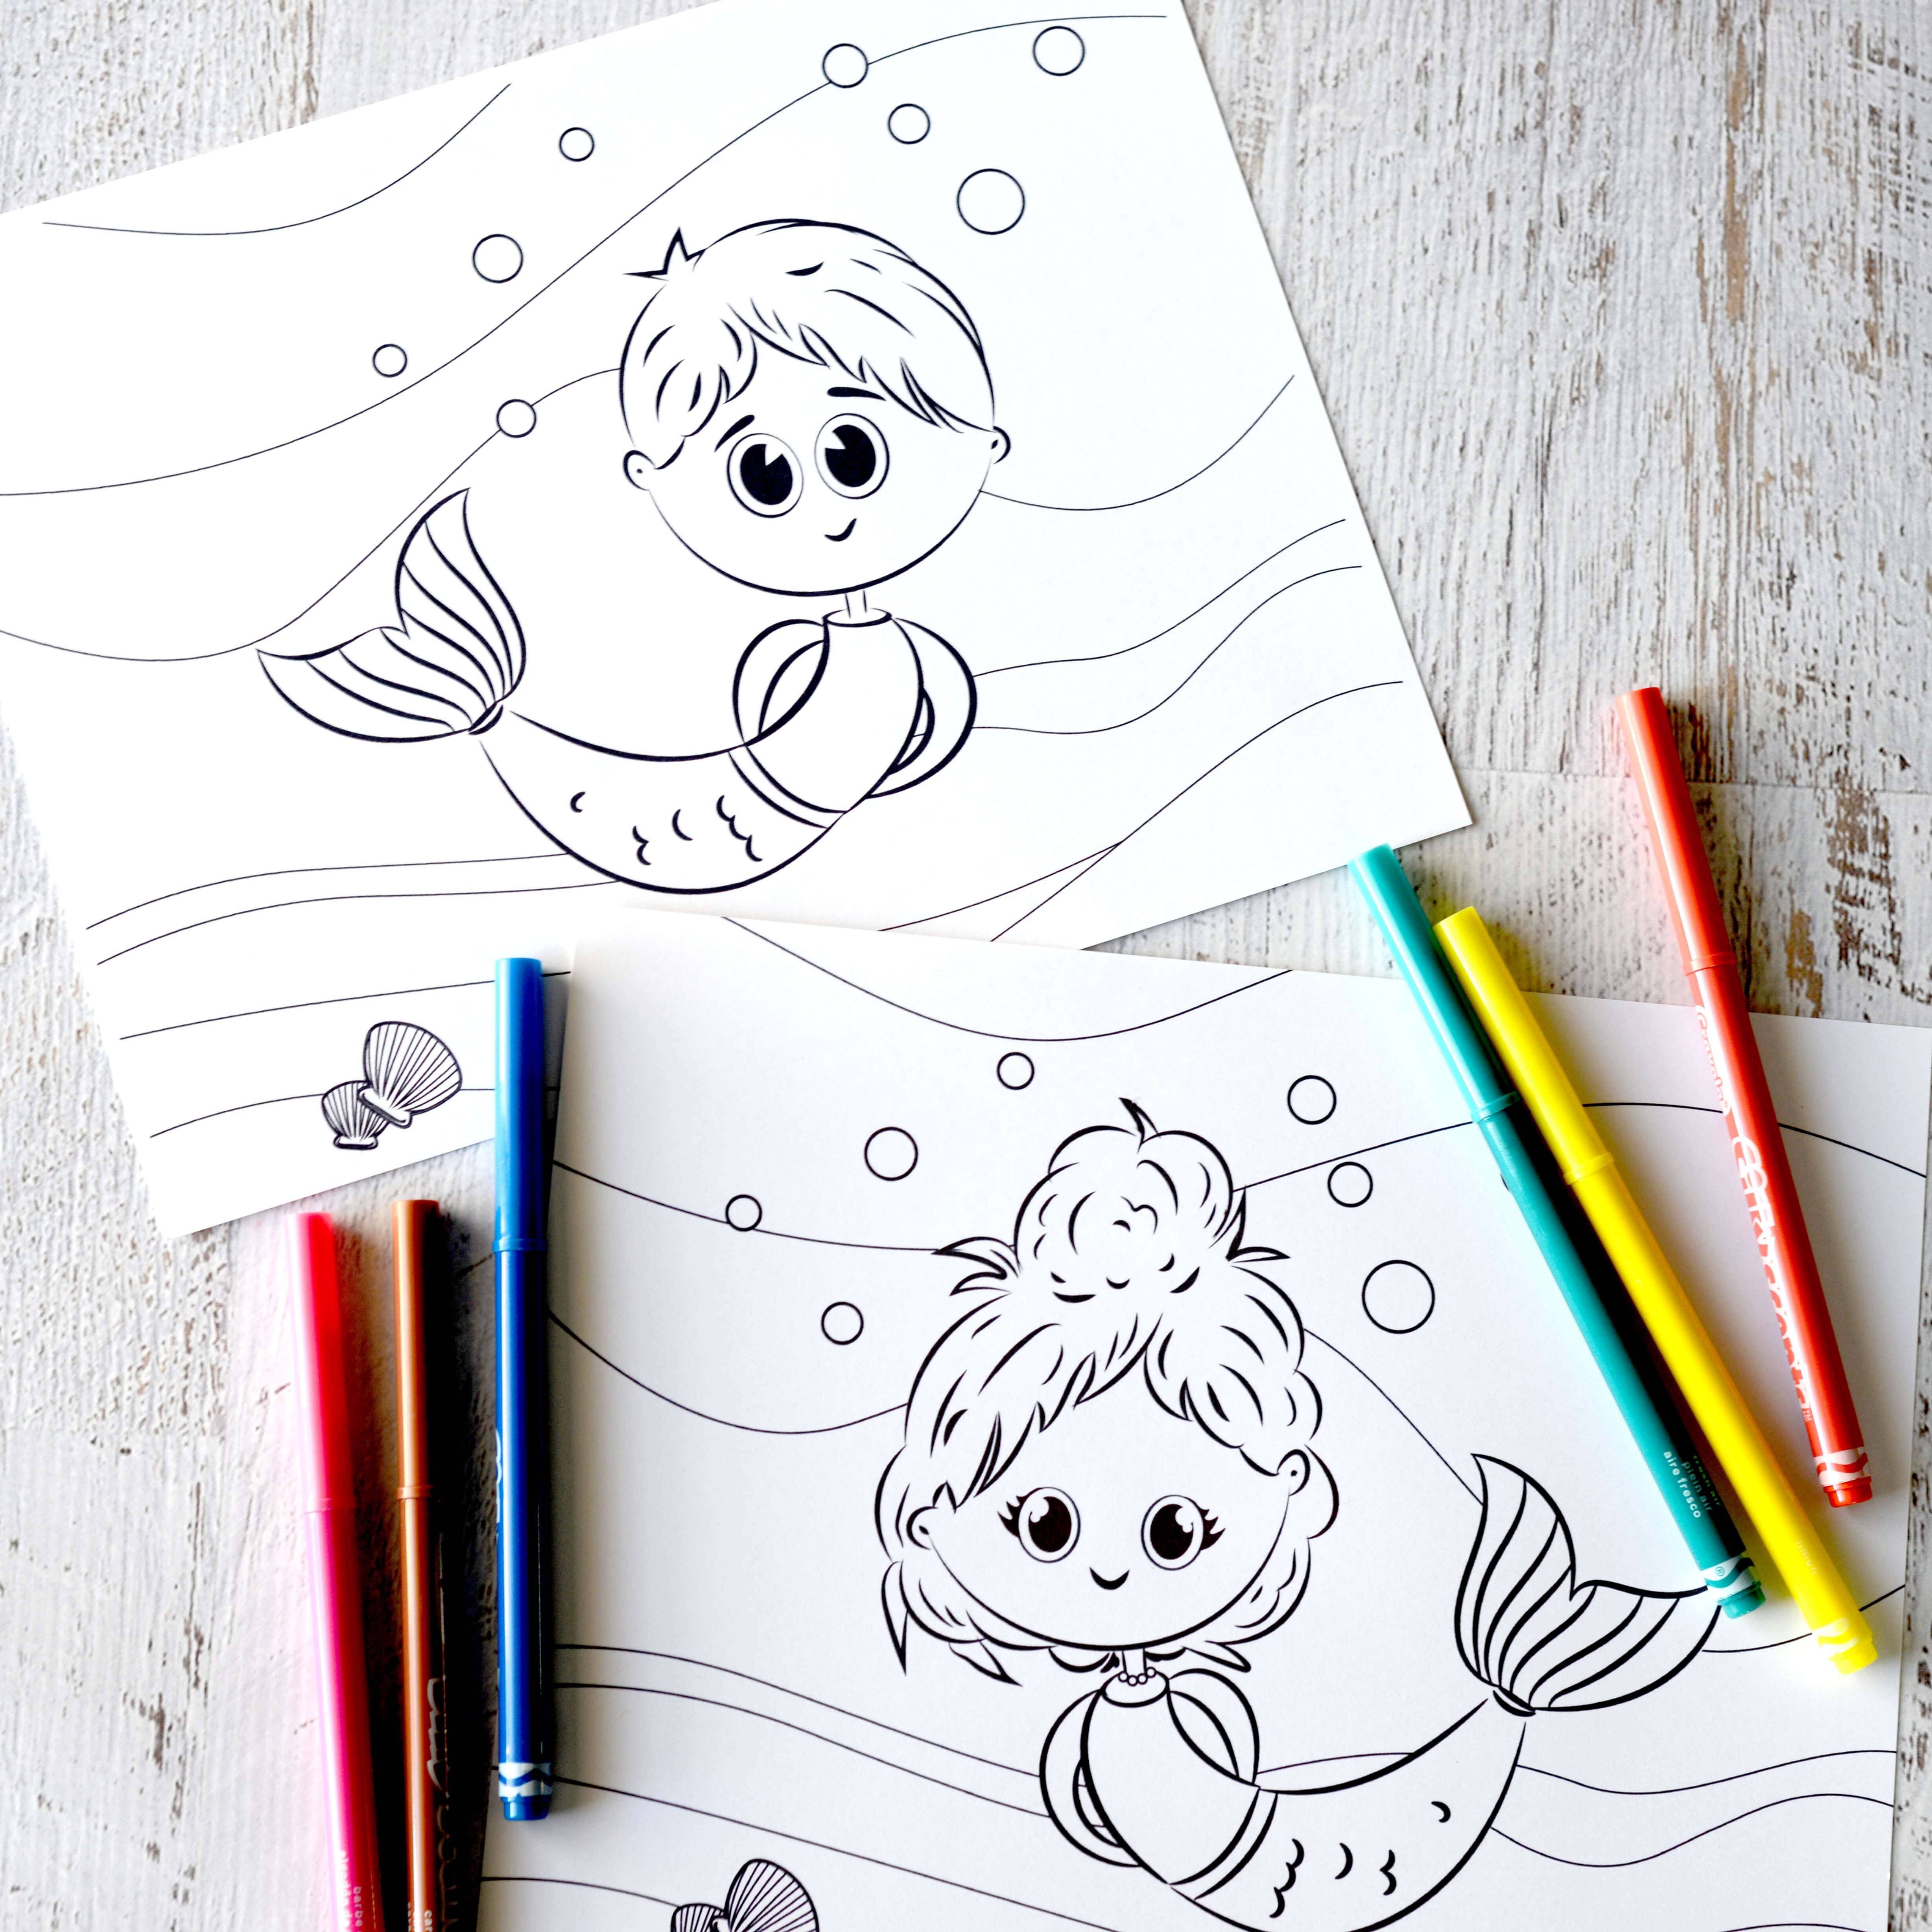 Free Mermaid Coloring Pages | Boy & Girl Mermaid Coloring Pages